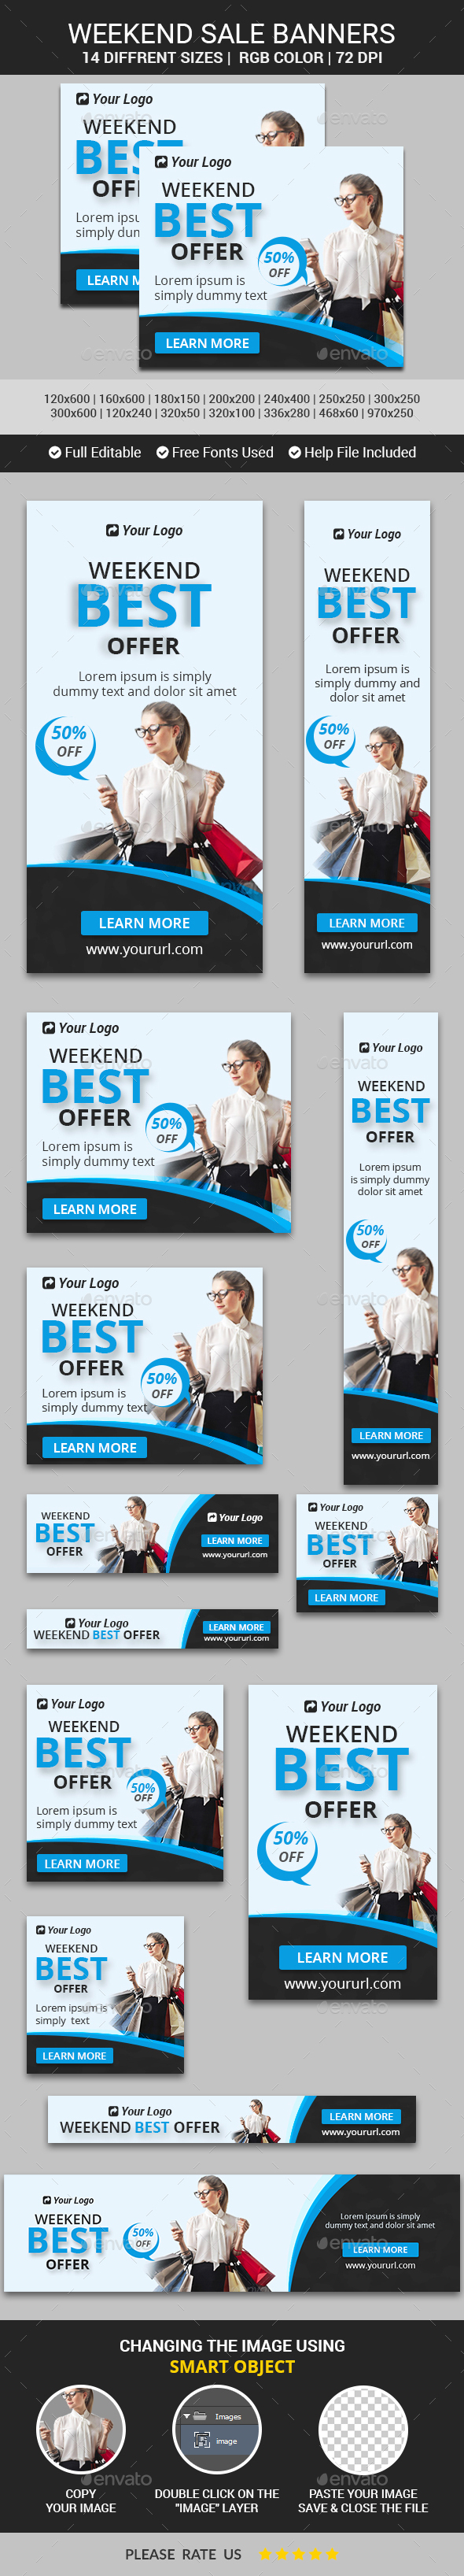 Weekend Sale Banners v12 - Banners & Ads Web Elements